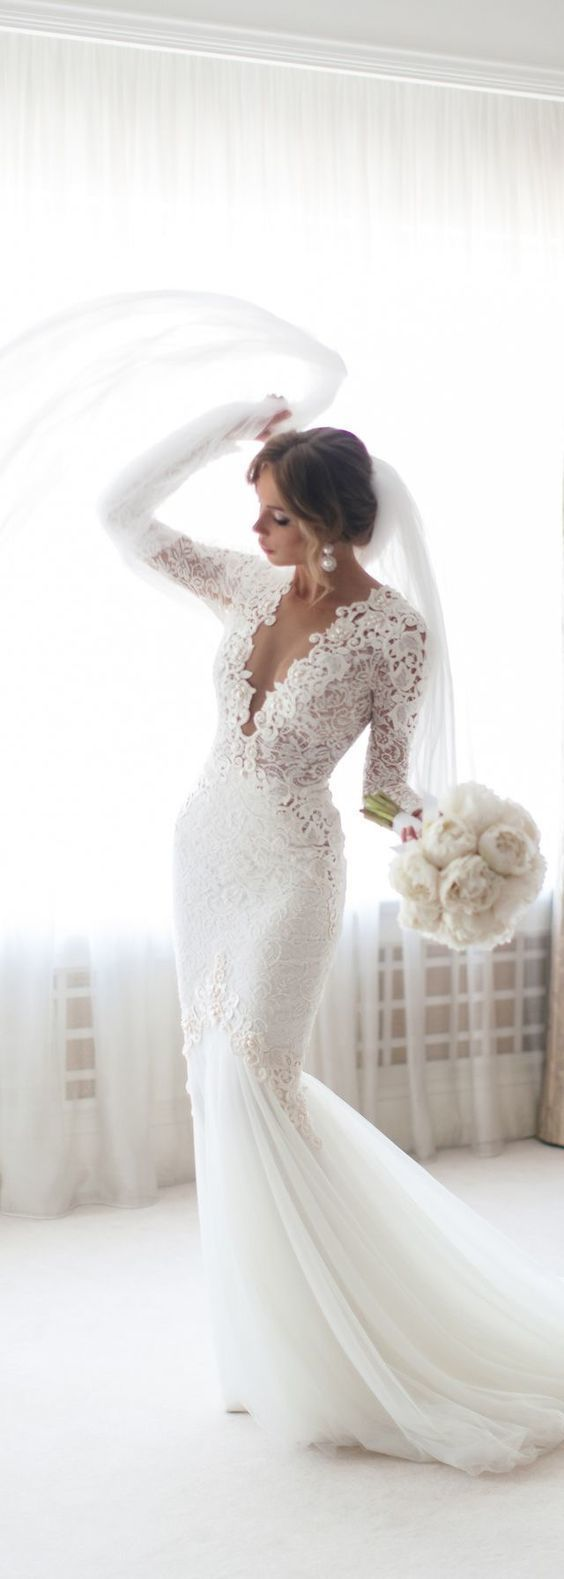 Hot custom made dresses Mermaid Wedding Dress lace wedding gowns sexy wedding dr…